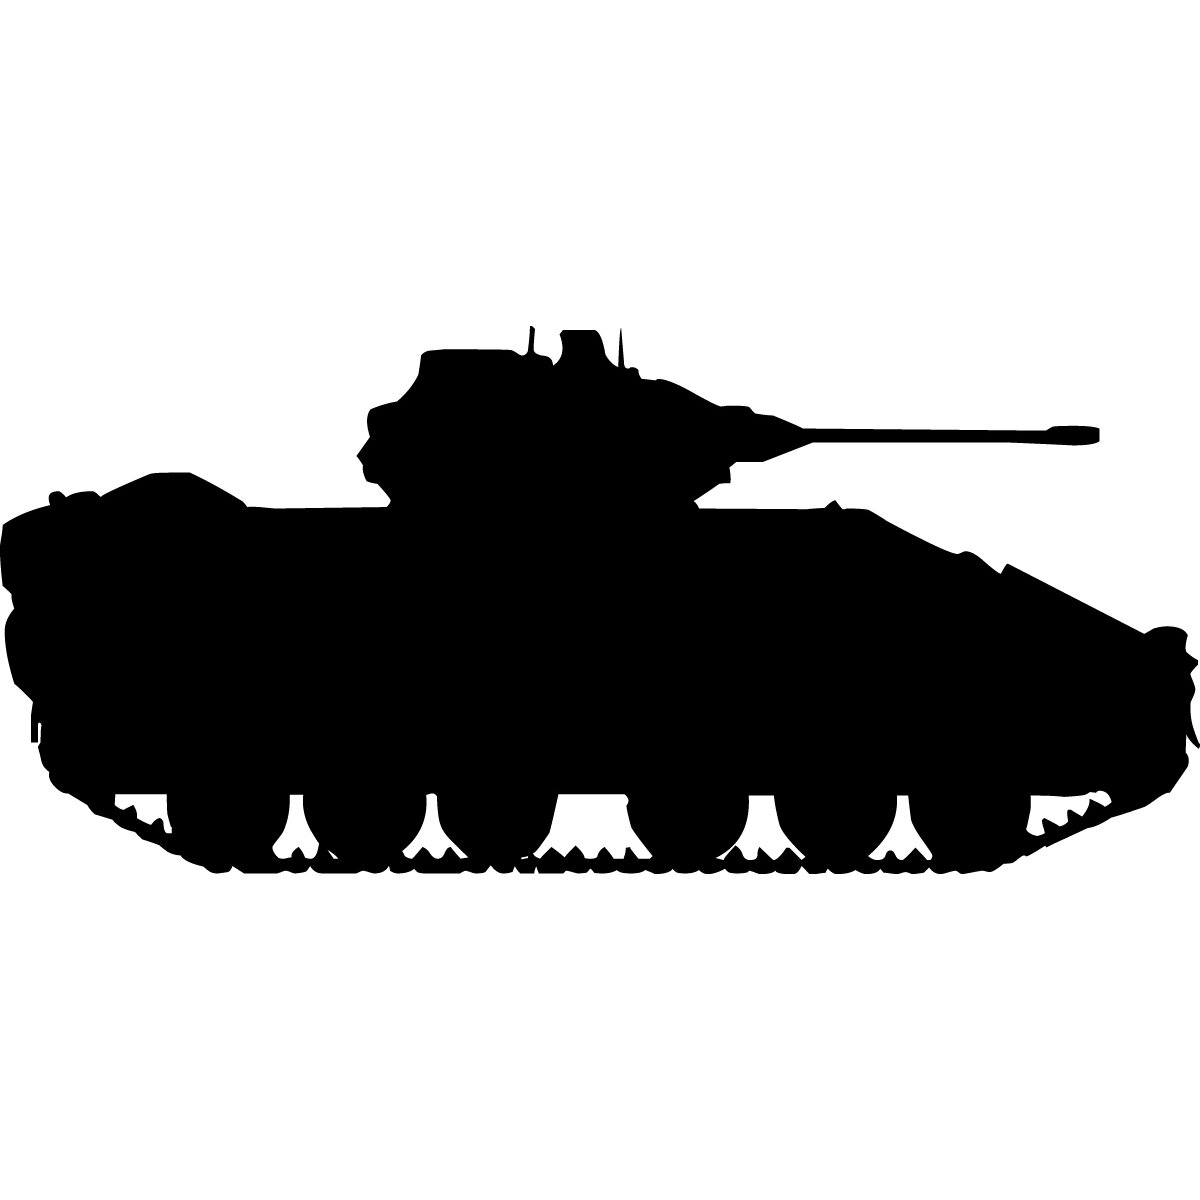 Haynes Military Tank Iii Silhouette Cutout Wall Decal